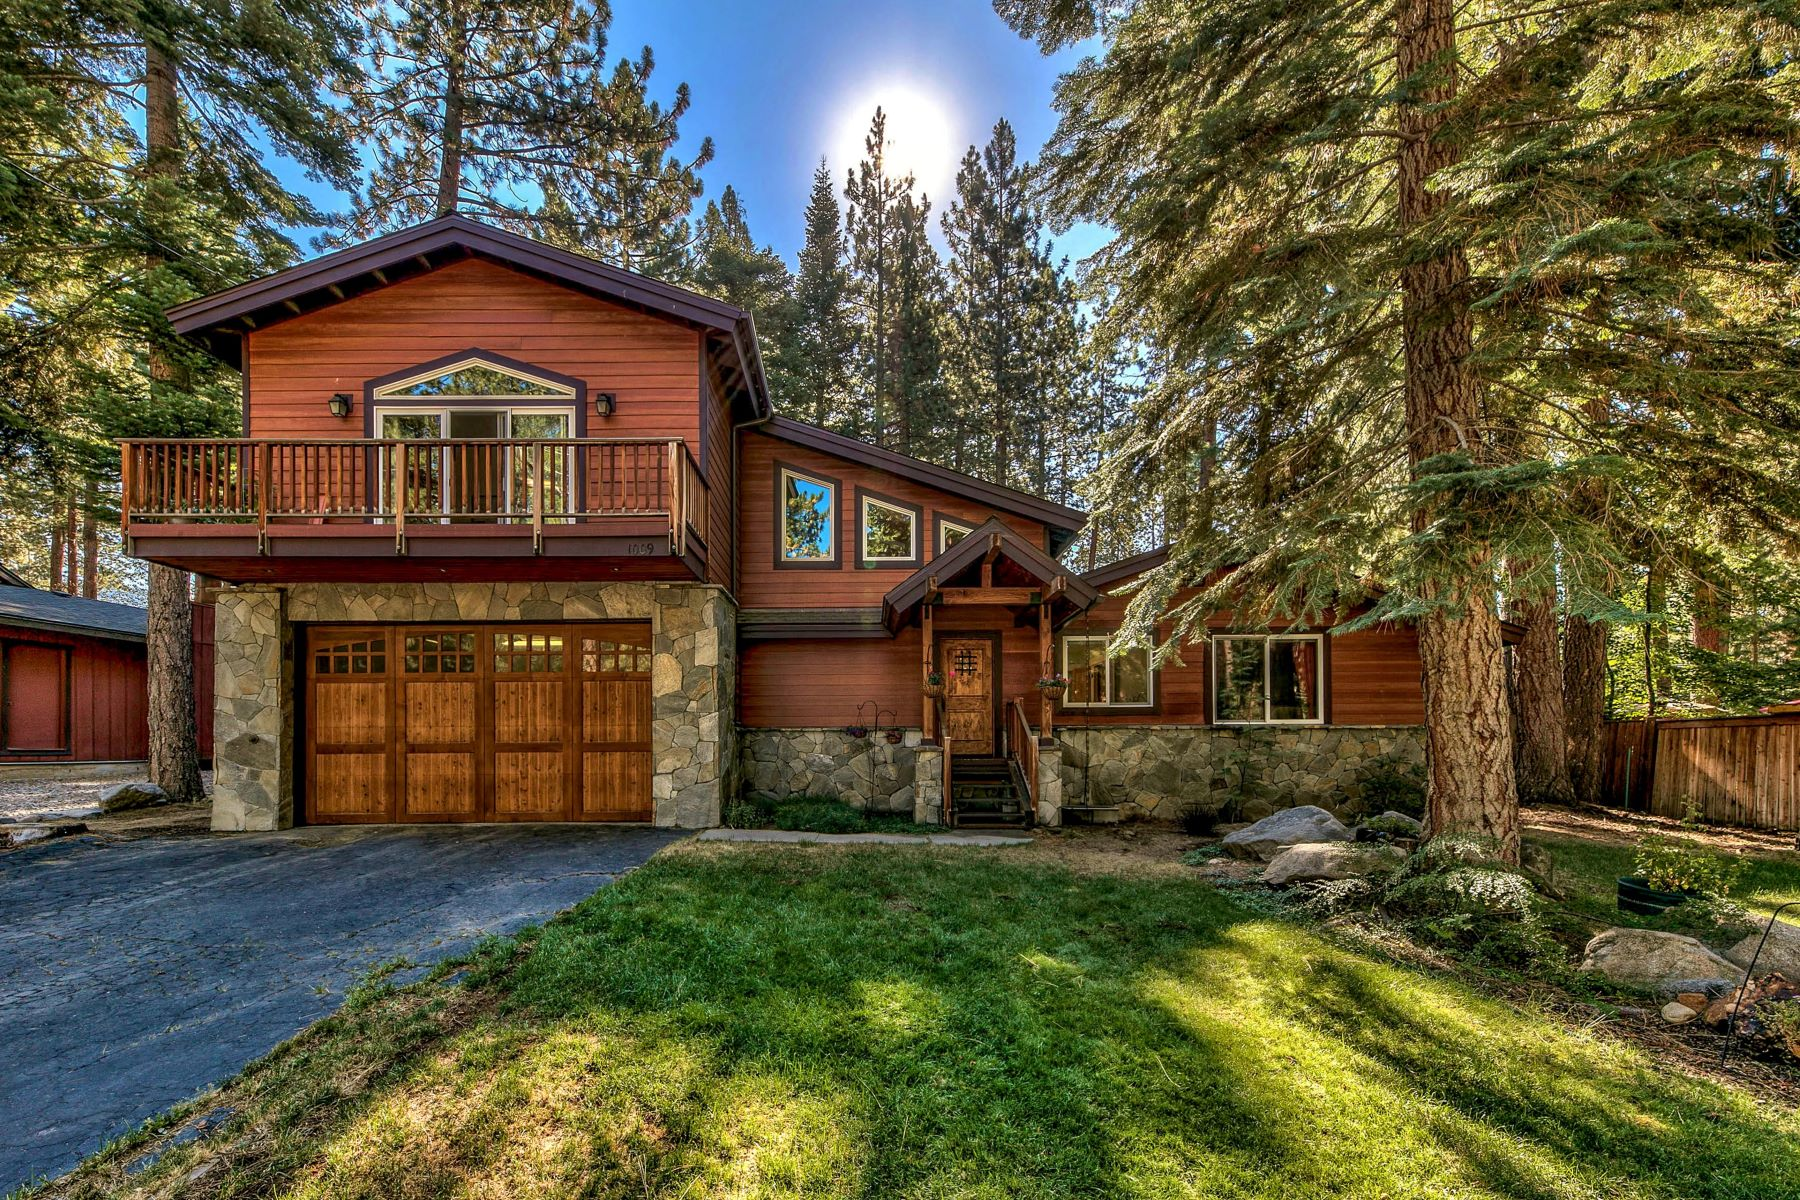 Single Family Homes for Sale at Lakefront neighborhood 1009 Red Fir Drive Glenbrook, Nevada 89413 United States